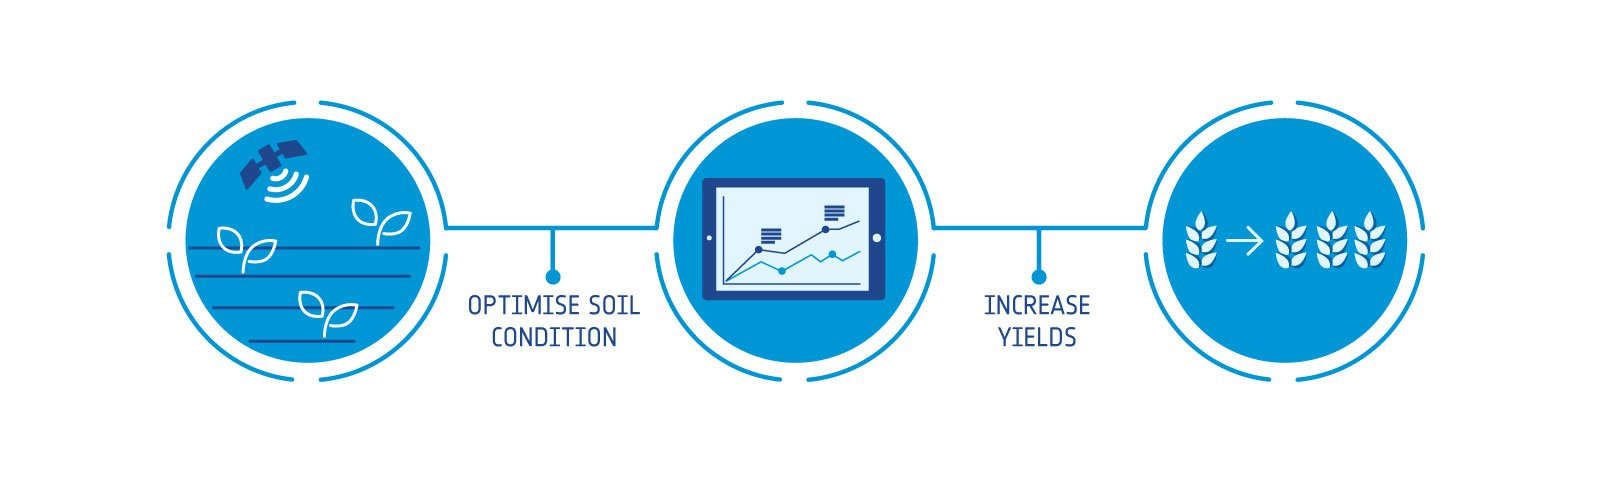 Optimise Soil Condition